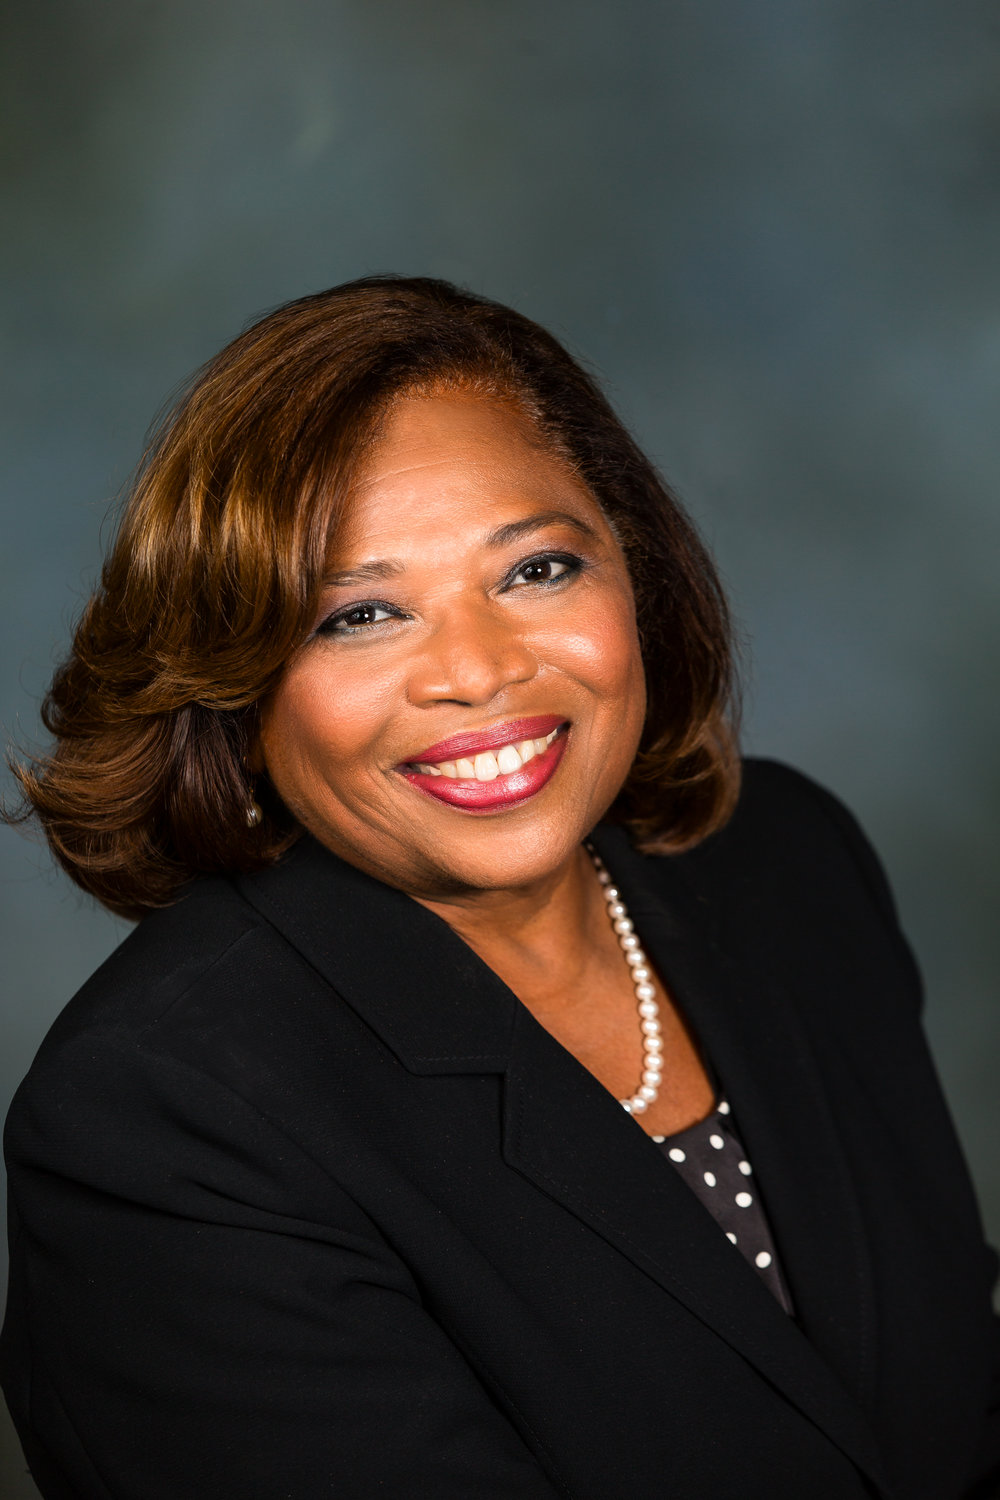 The Malverne School District announced that longtime educator Dr. Lorna Lewis will become their next superintendent, effective August 1.